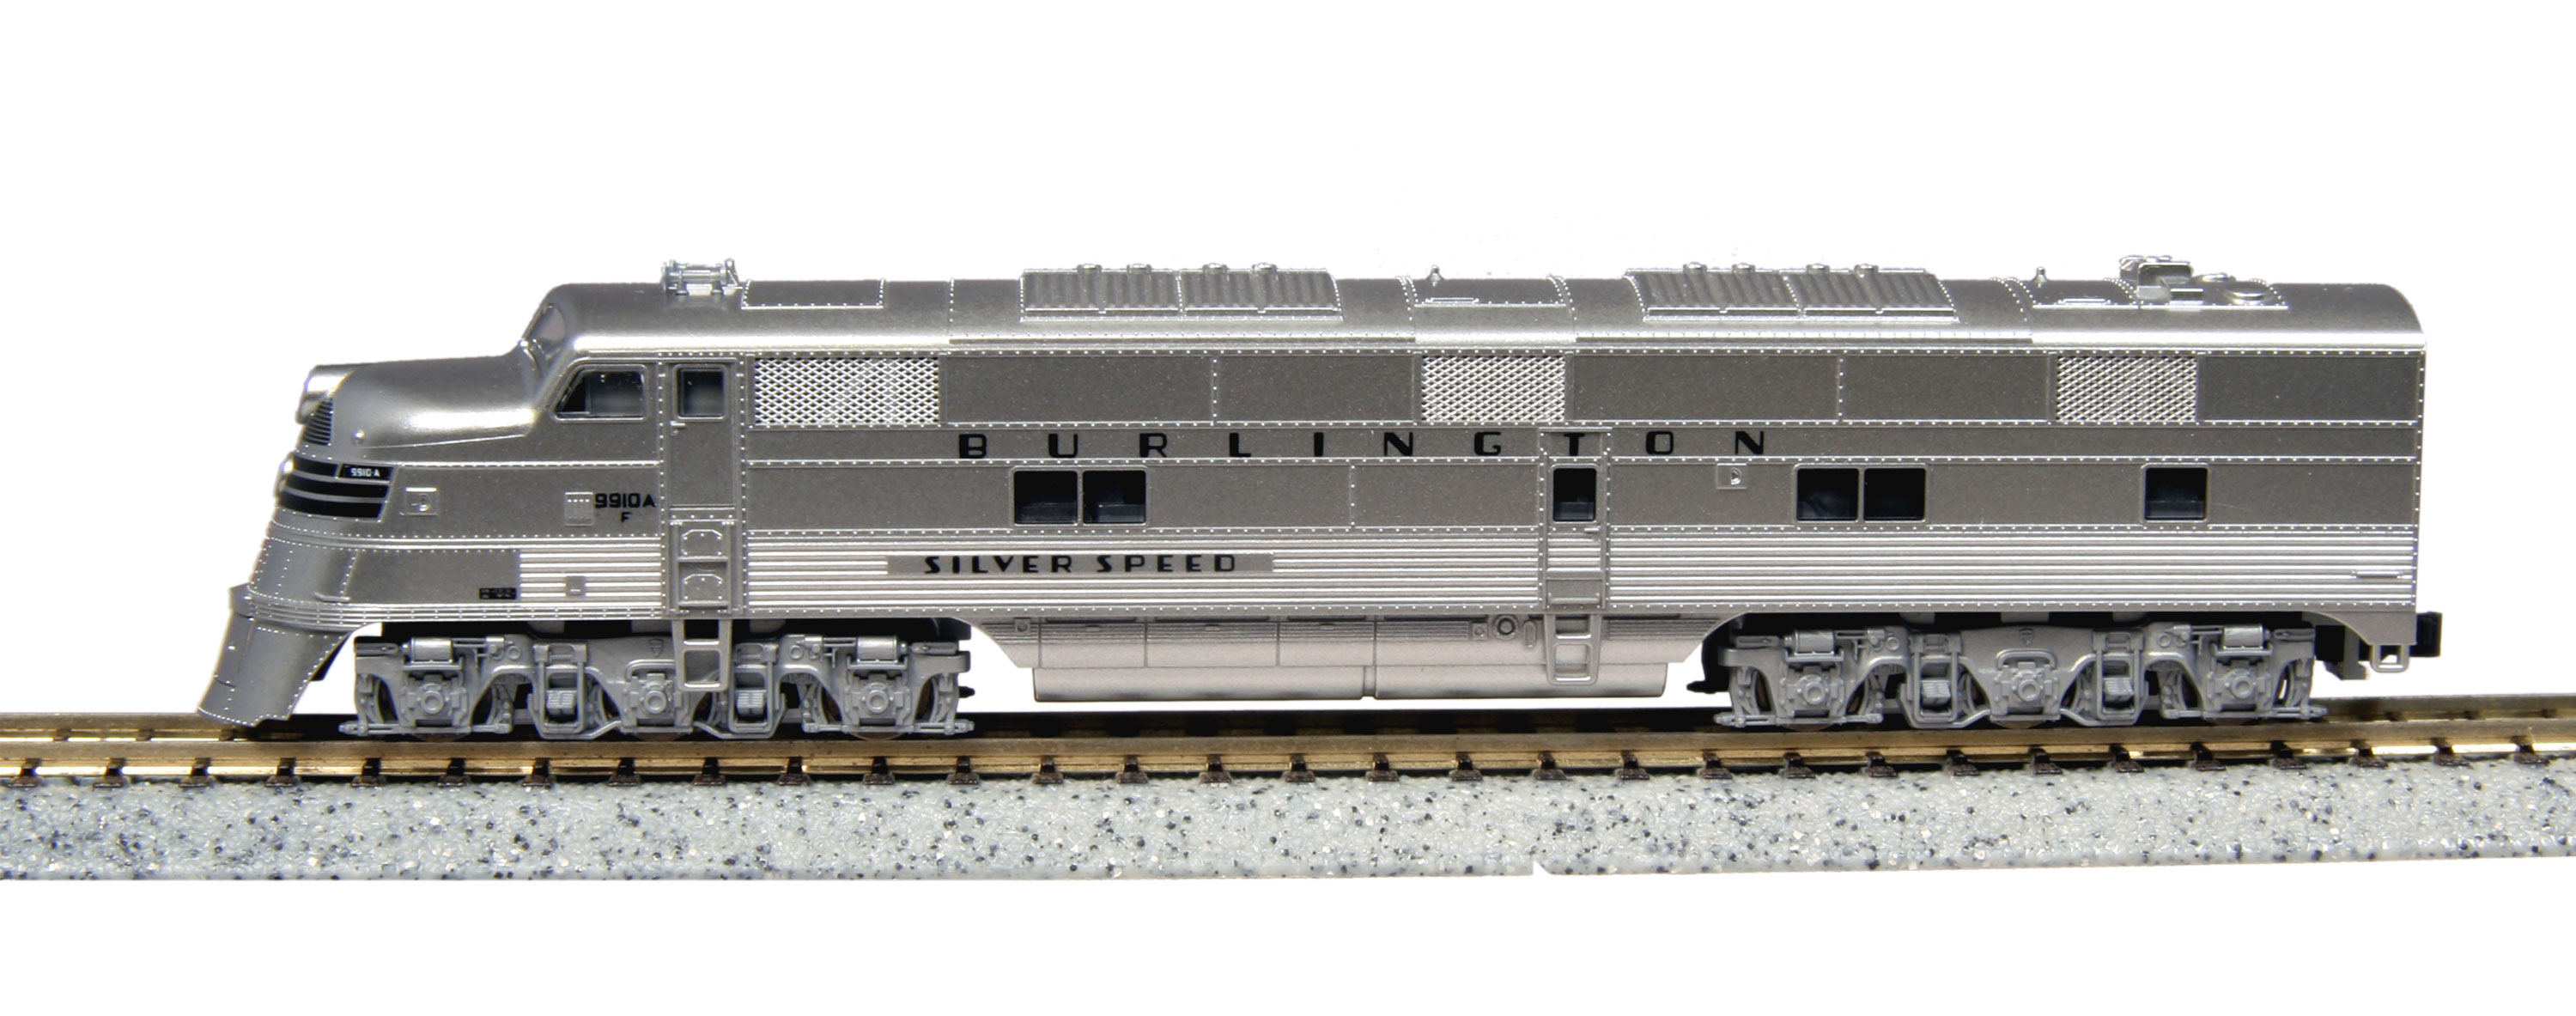 Old Passenger Train Side View Train Side View Full Train Sid